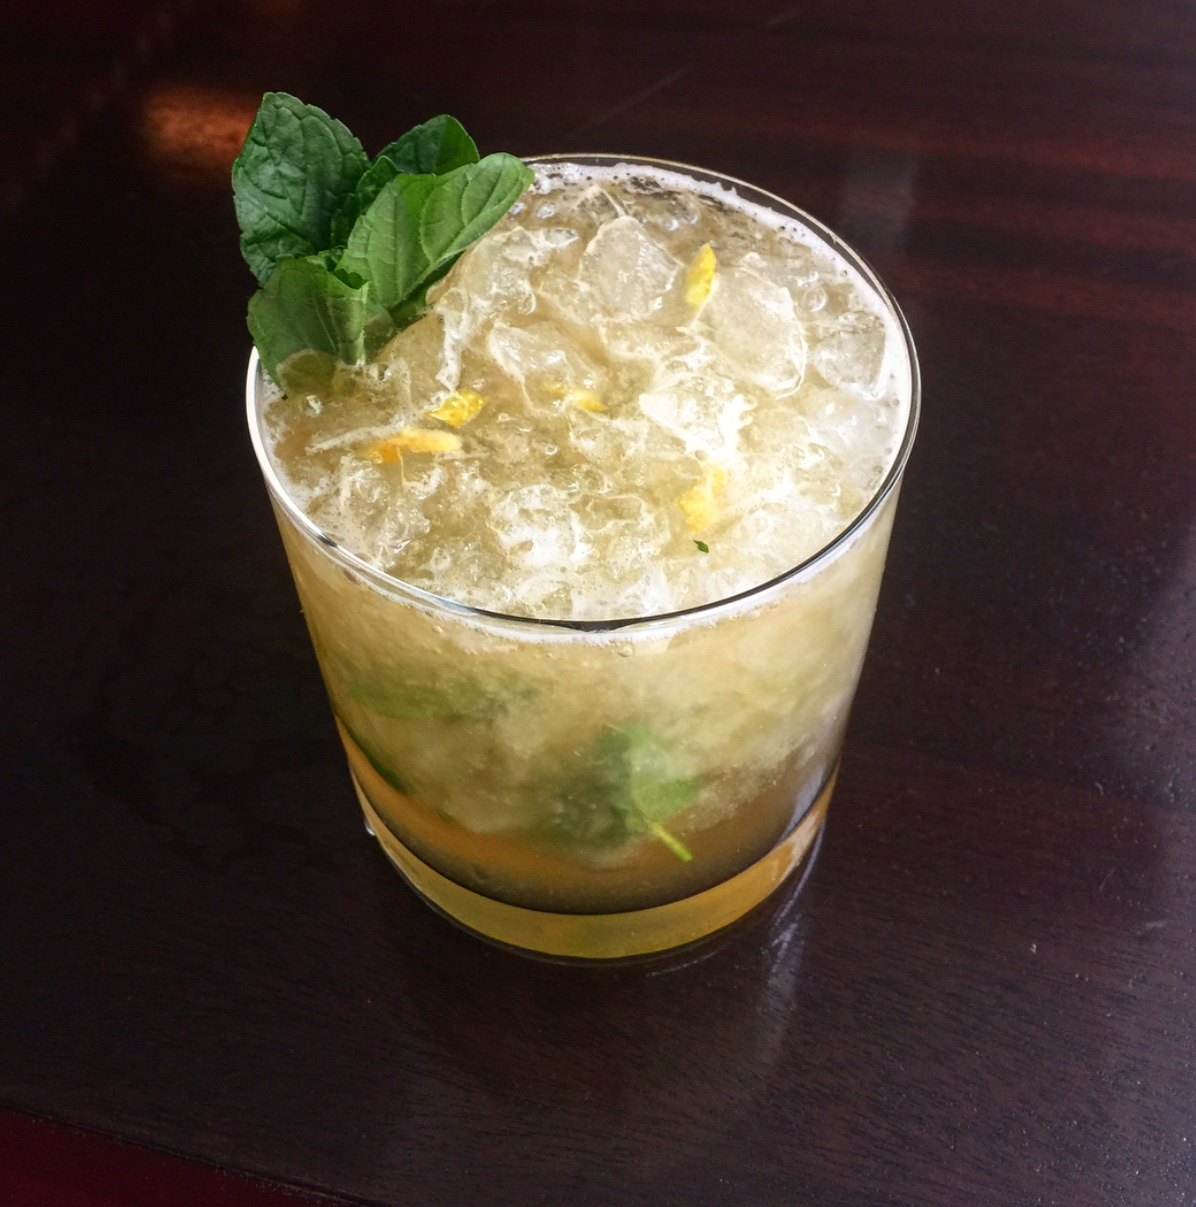 RARE Steakhouse and Tavern Clover'd Julep (Image:{ }RARE Steakhouse and Tavern)